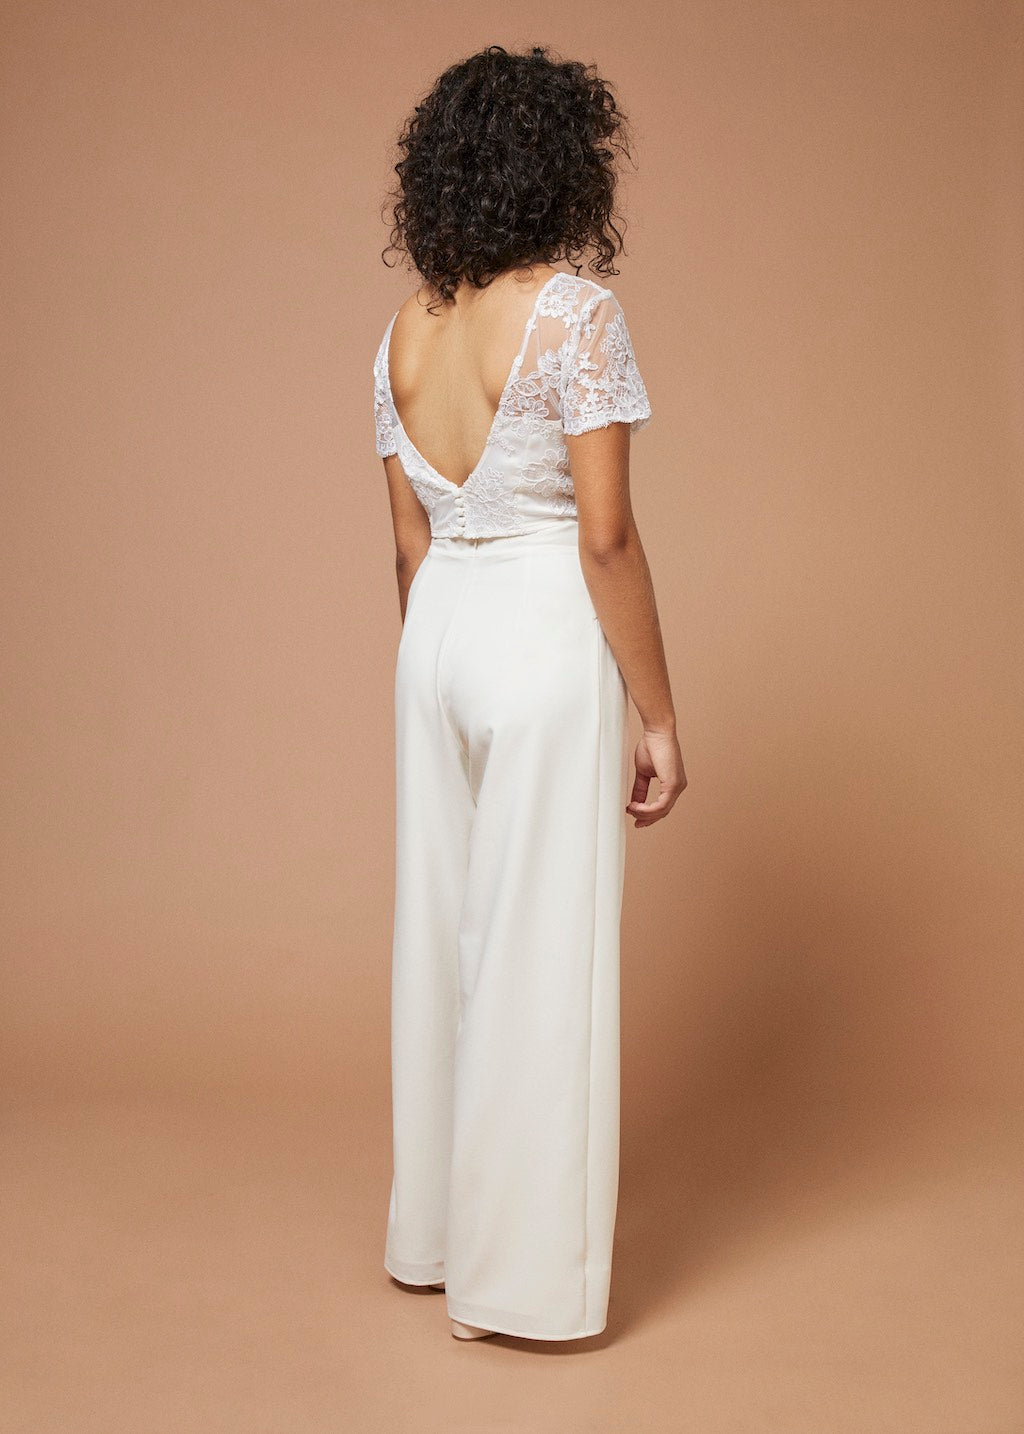 Les Marquis | Open Back Lace Bridal Top